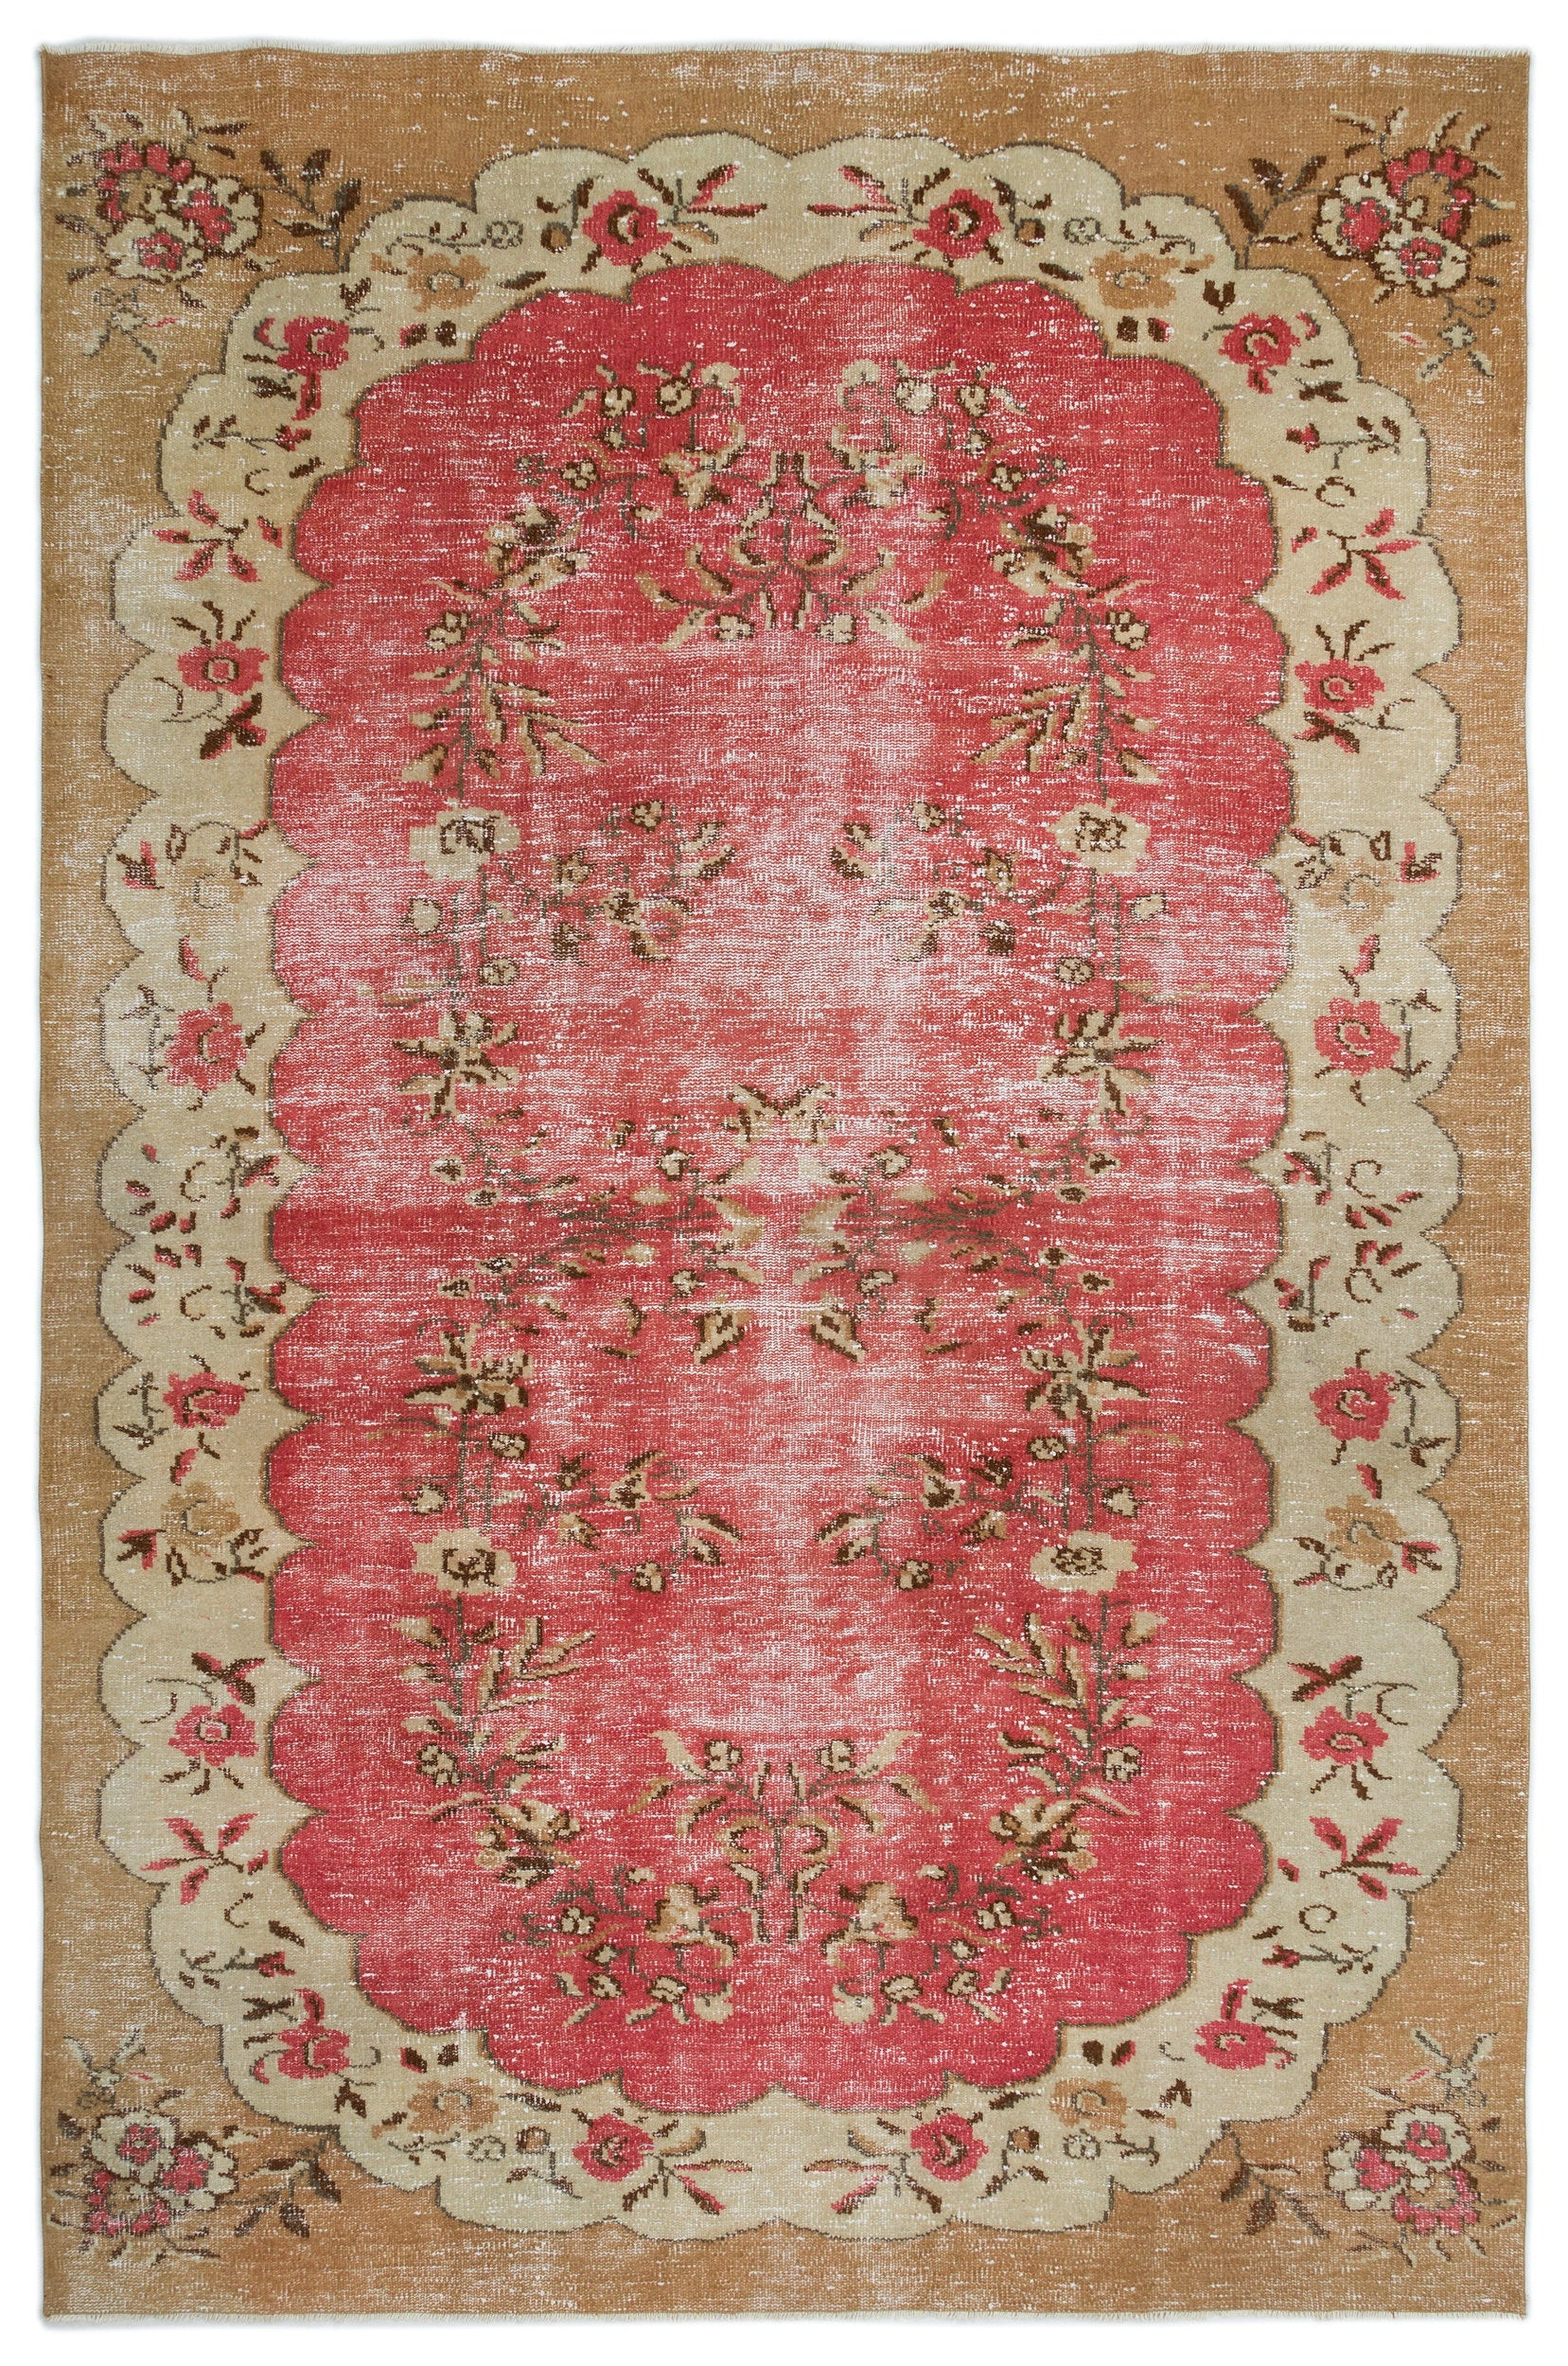 Retro Over Dyed Vintage Rug 6'5'' x 9'7'' ft 195 x 293 cm